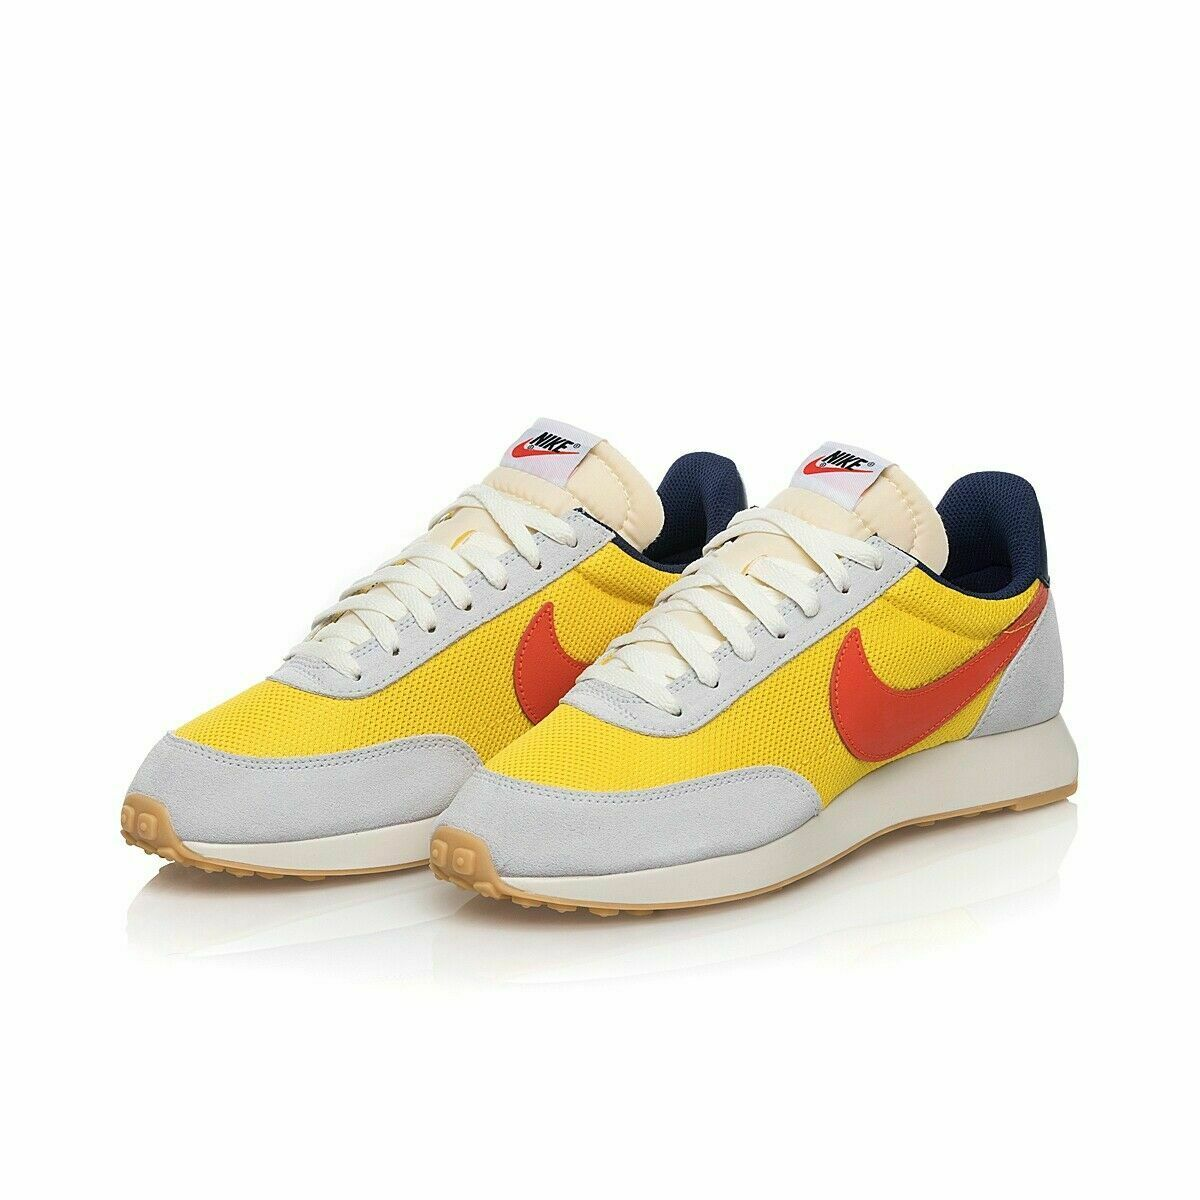 Nike Air Tailwind 79 Tour Yellow BLue Tint shoes Mens sizes